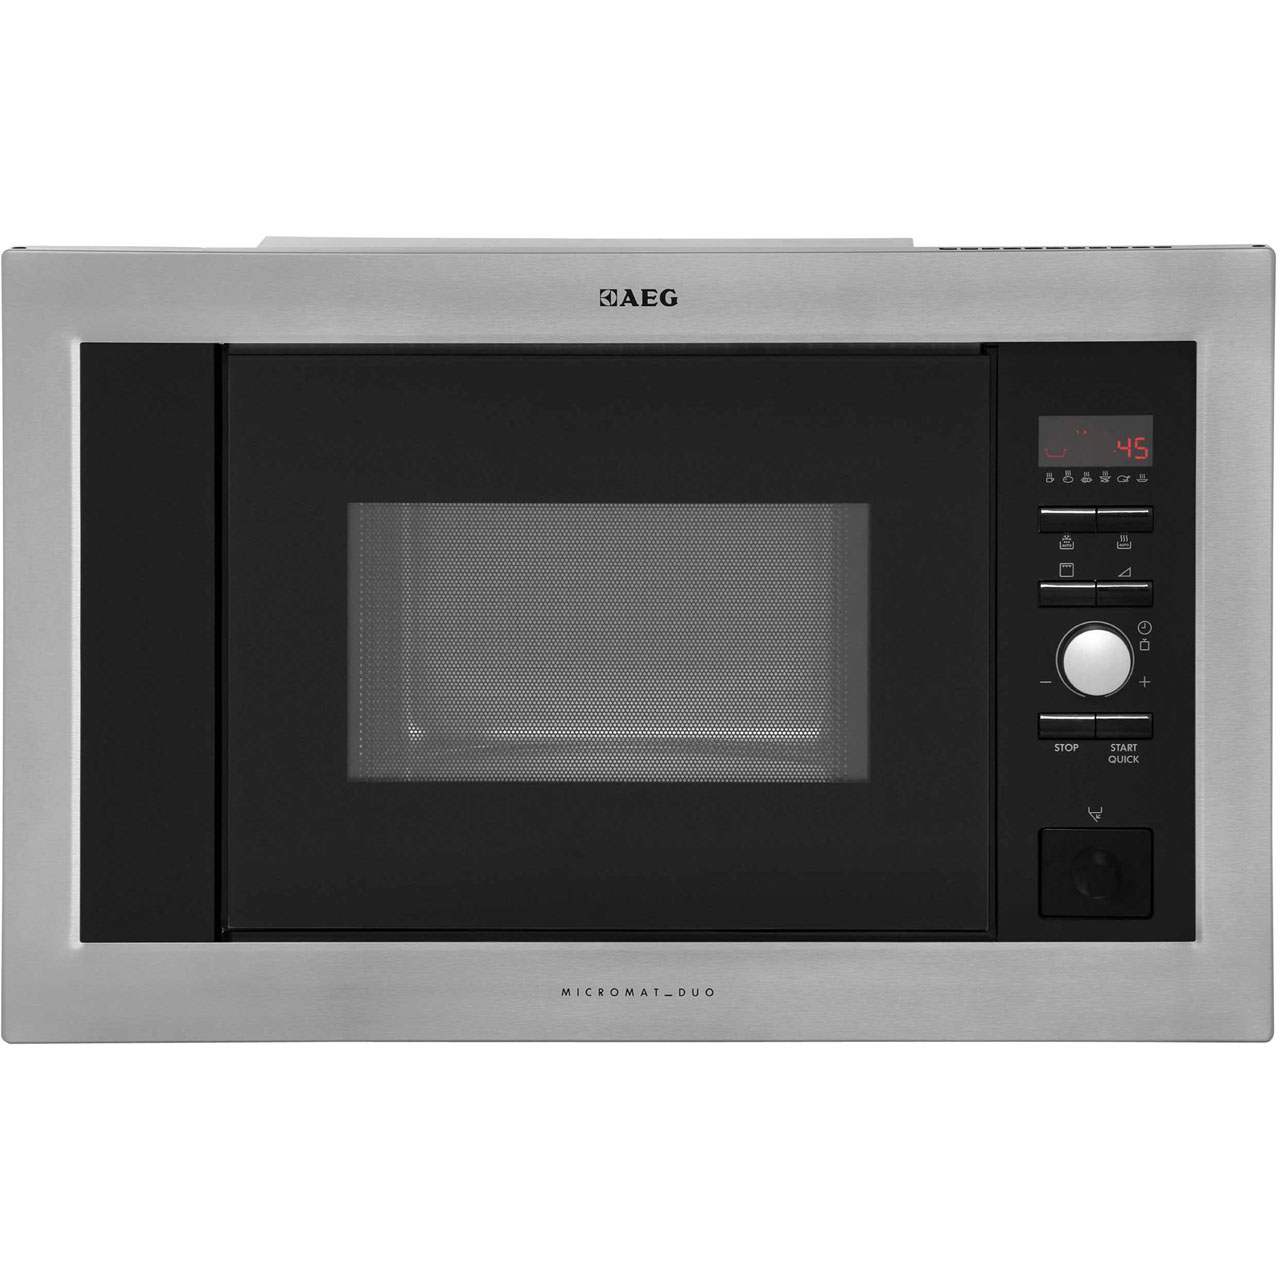 AEG MCD1763EM Integrated Microwave Oven in Stainless Steel